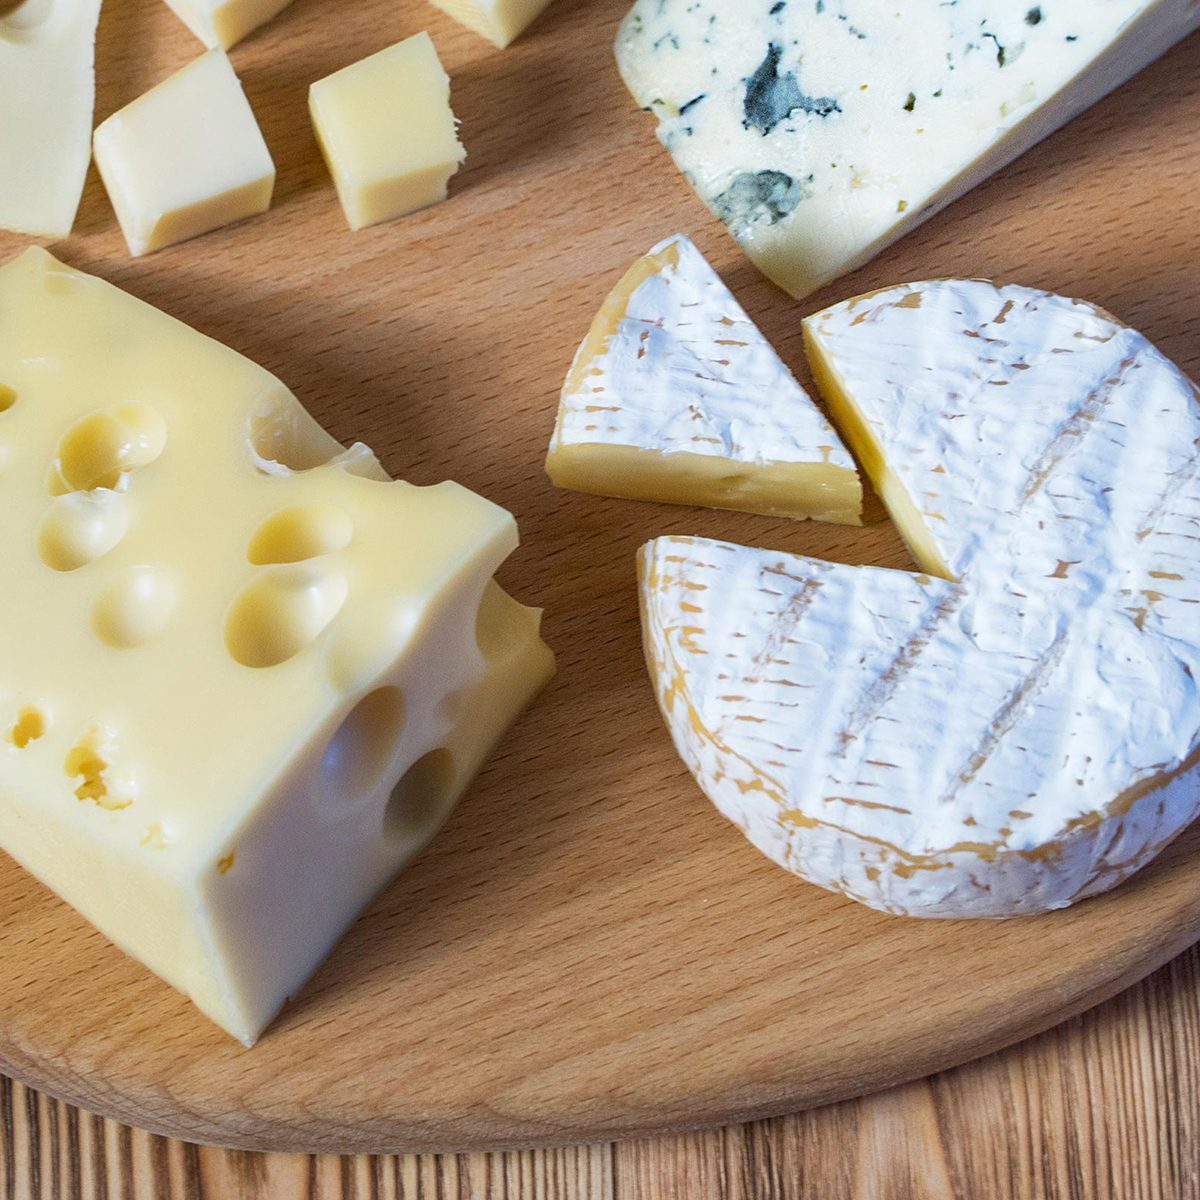 Different cheeses on a platter